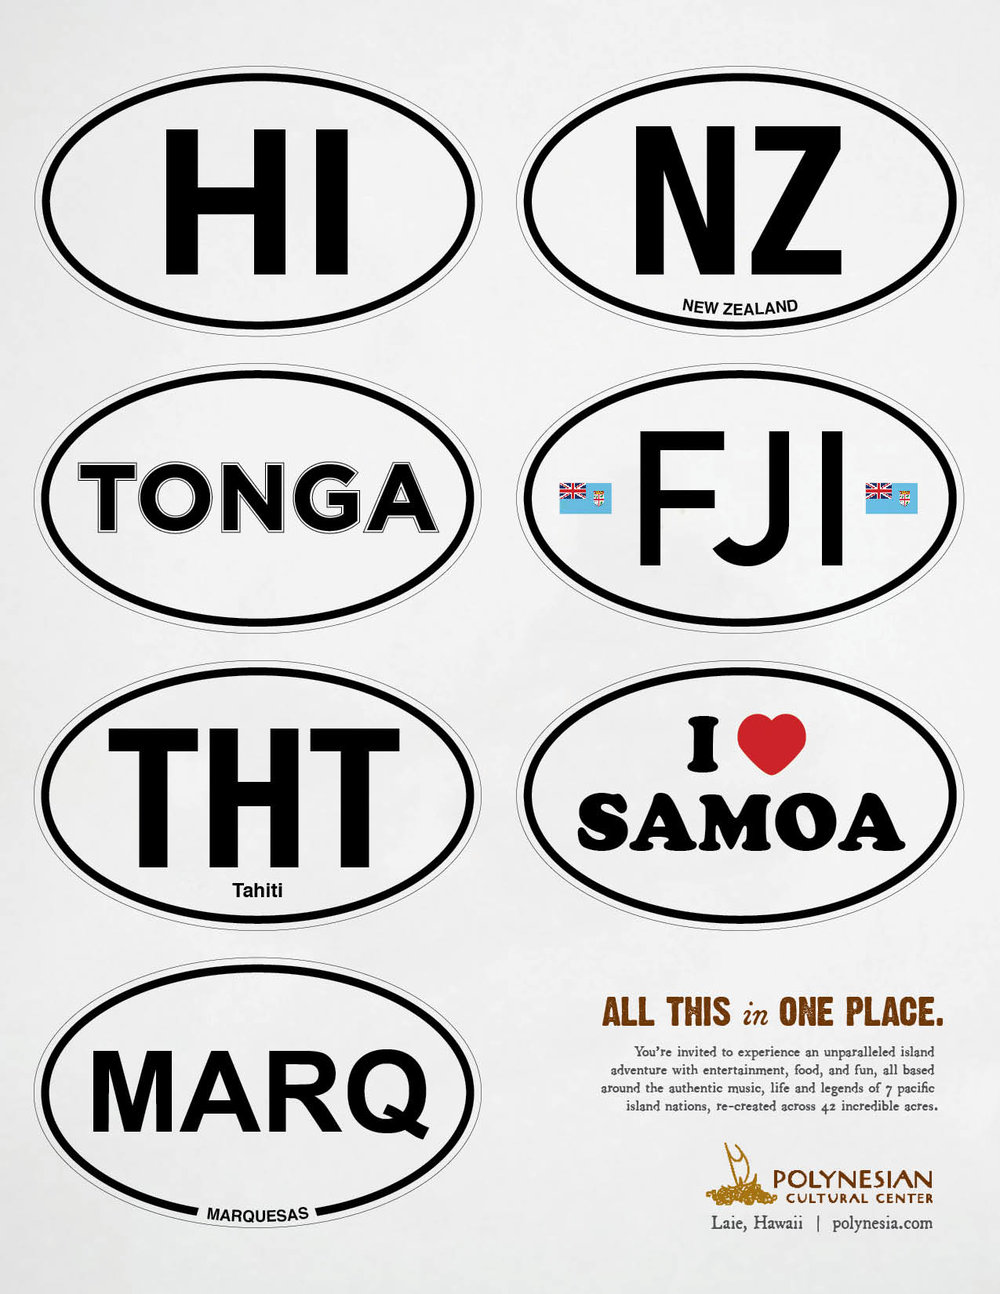 Hawaii, New Zealand, Tonga, Fiji, Tahiti, Samoa, and Marquesas all in one place.